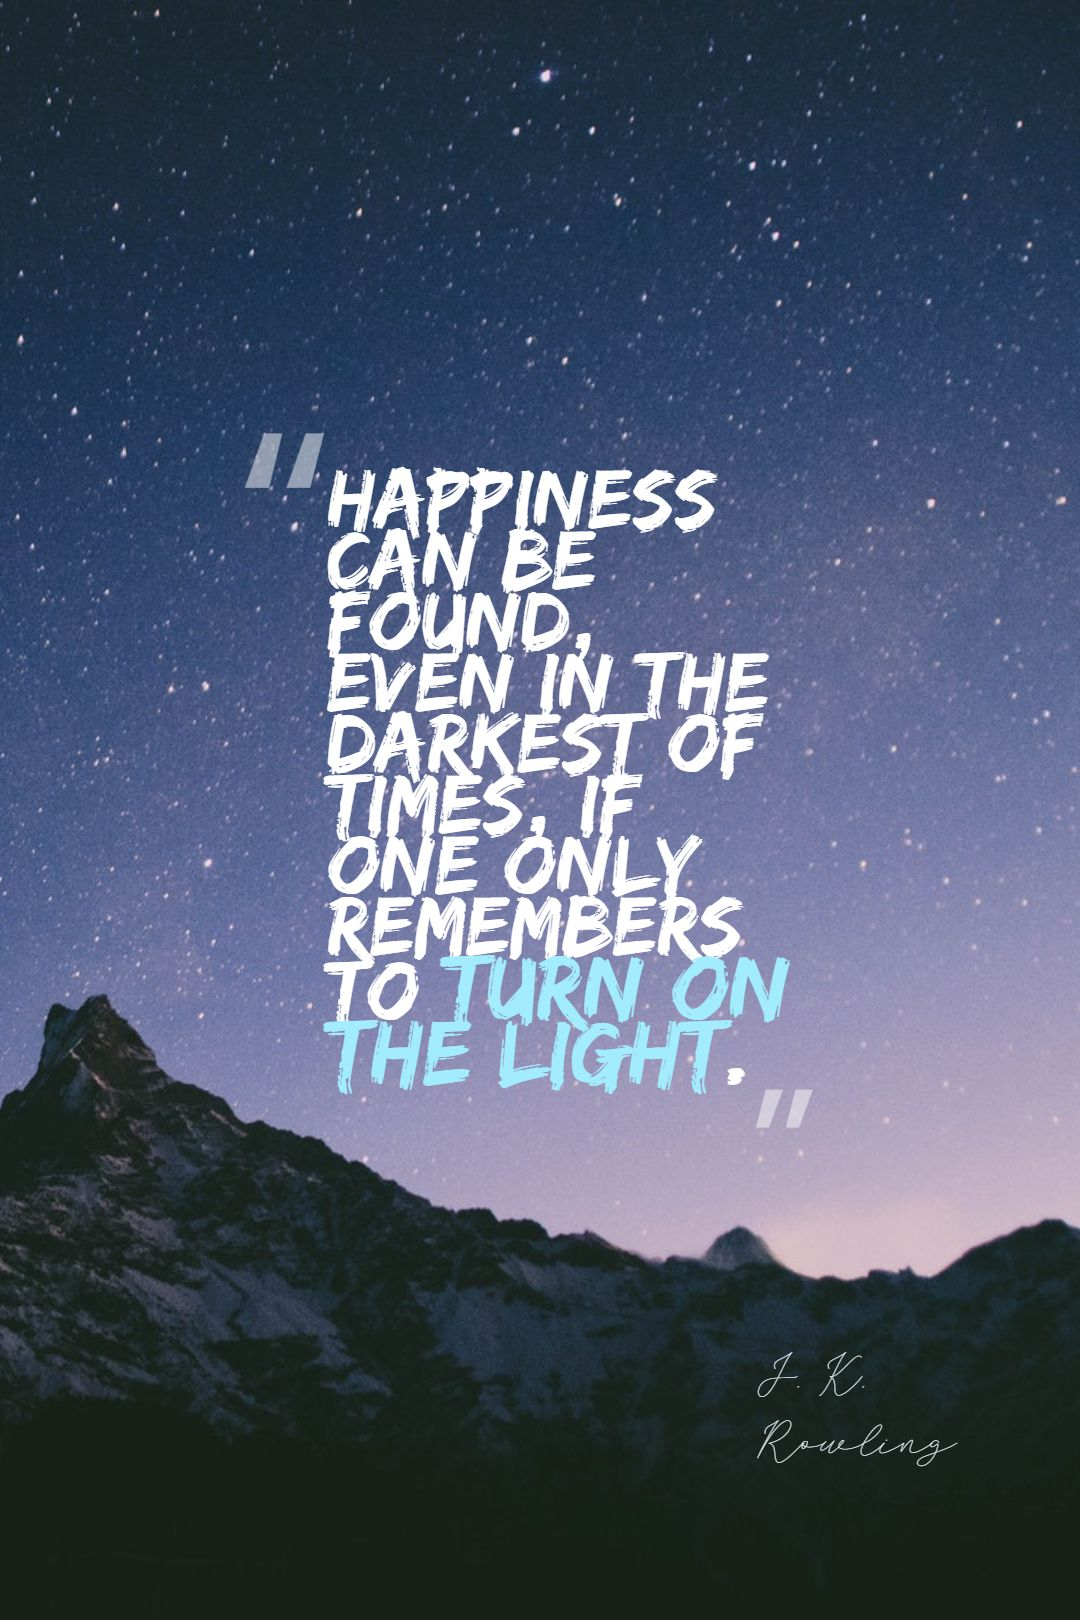 Quotes image of Happiness can be found, even in the darkest of times, if one only remembers to turn on the light.